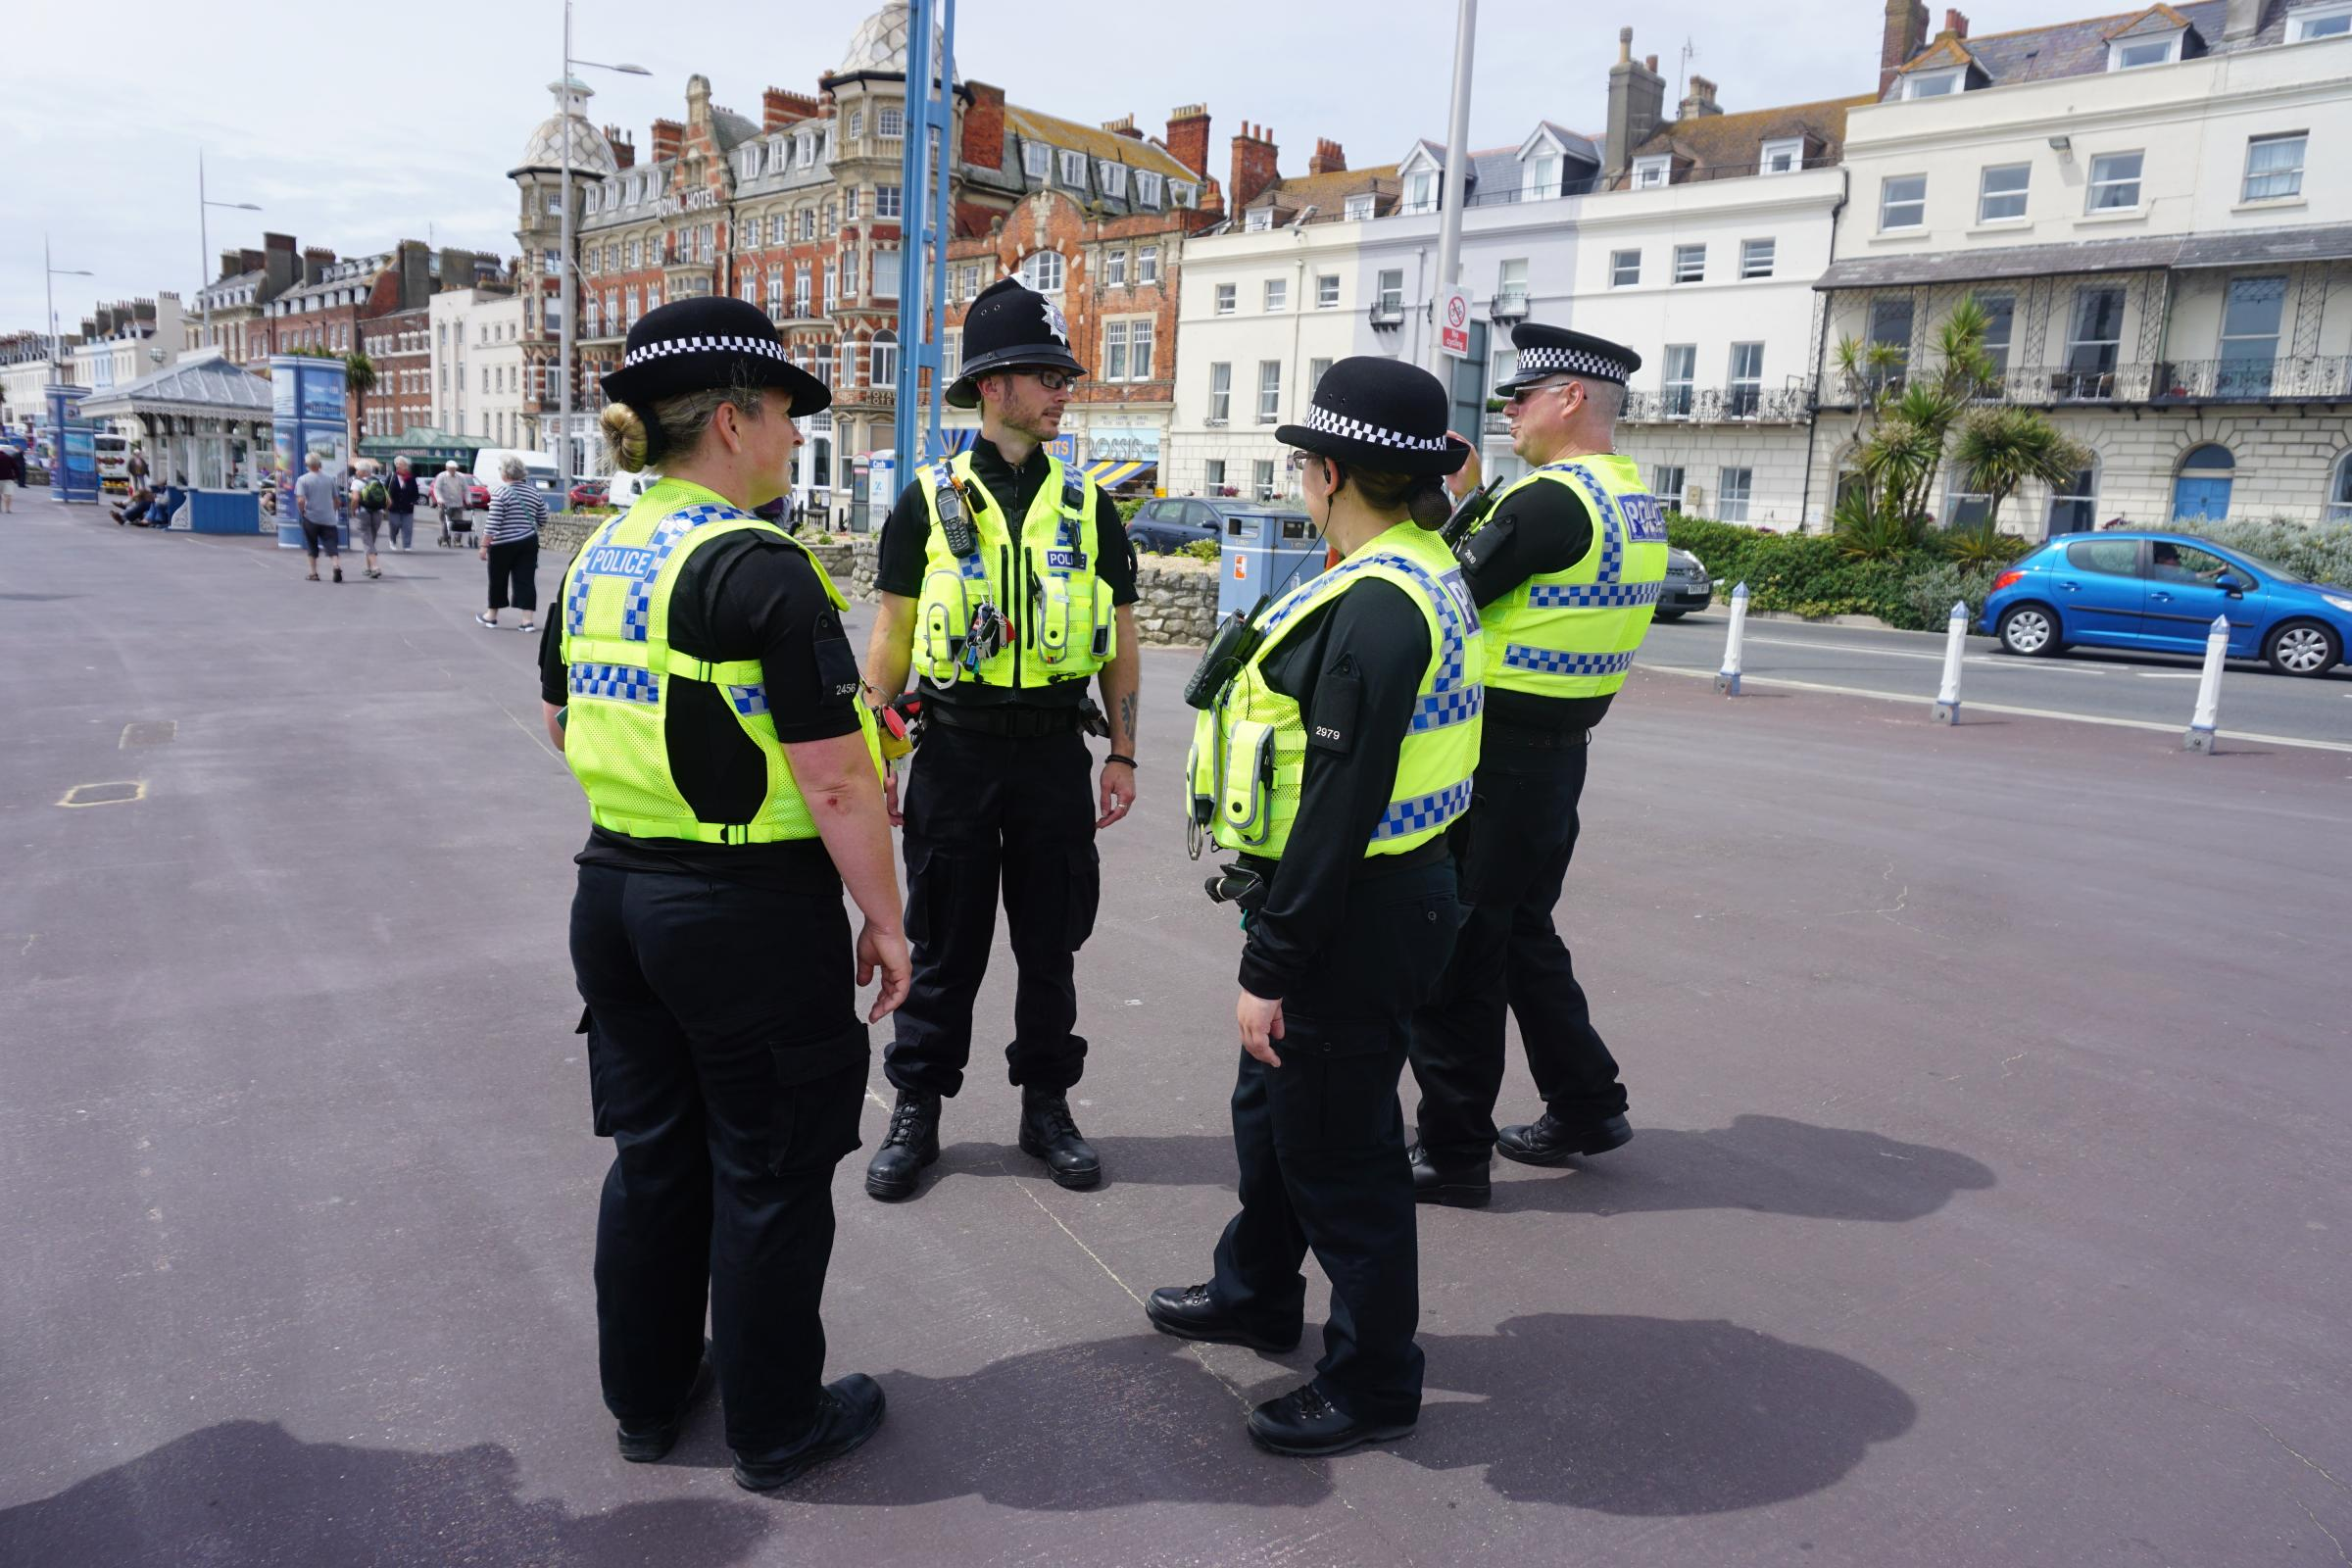 Police deal with group of youths causing trouble in town centre